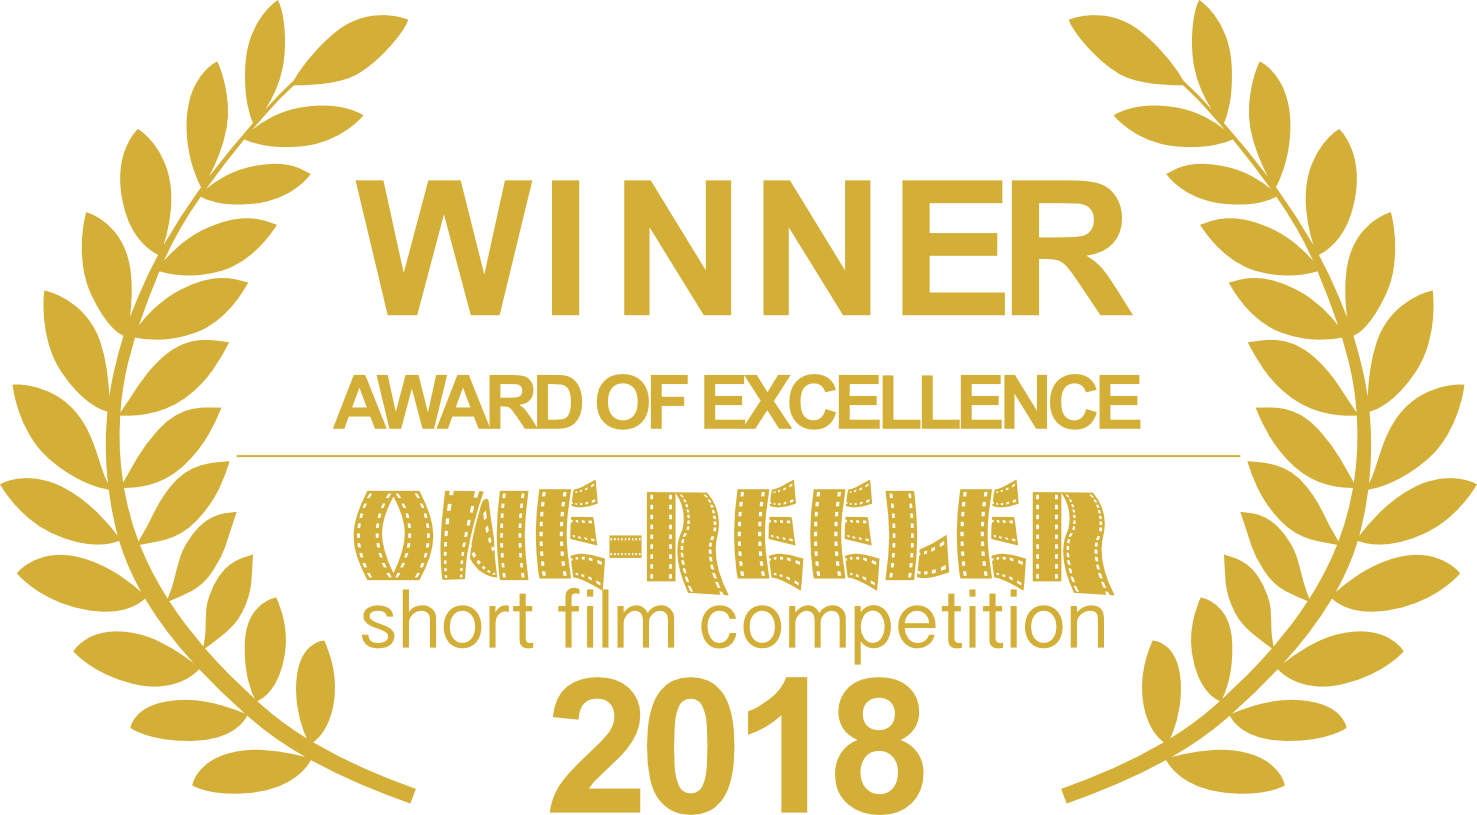 The Carbon Farmer, award-winner at the One-Reeler Short Film Competition 2018